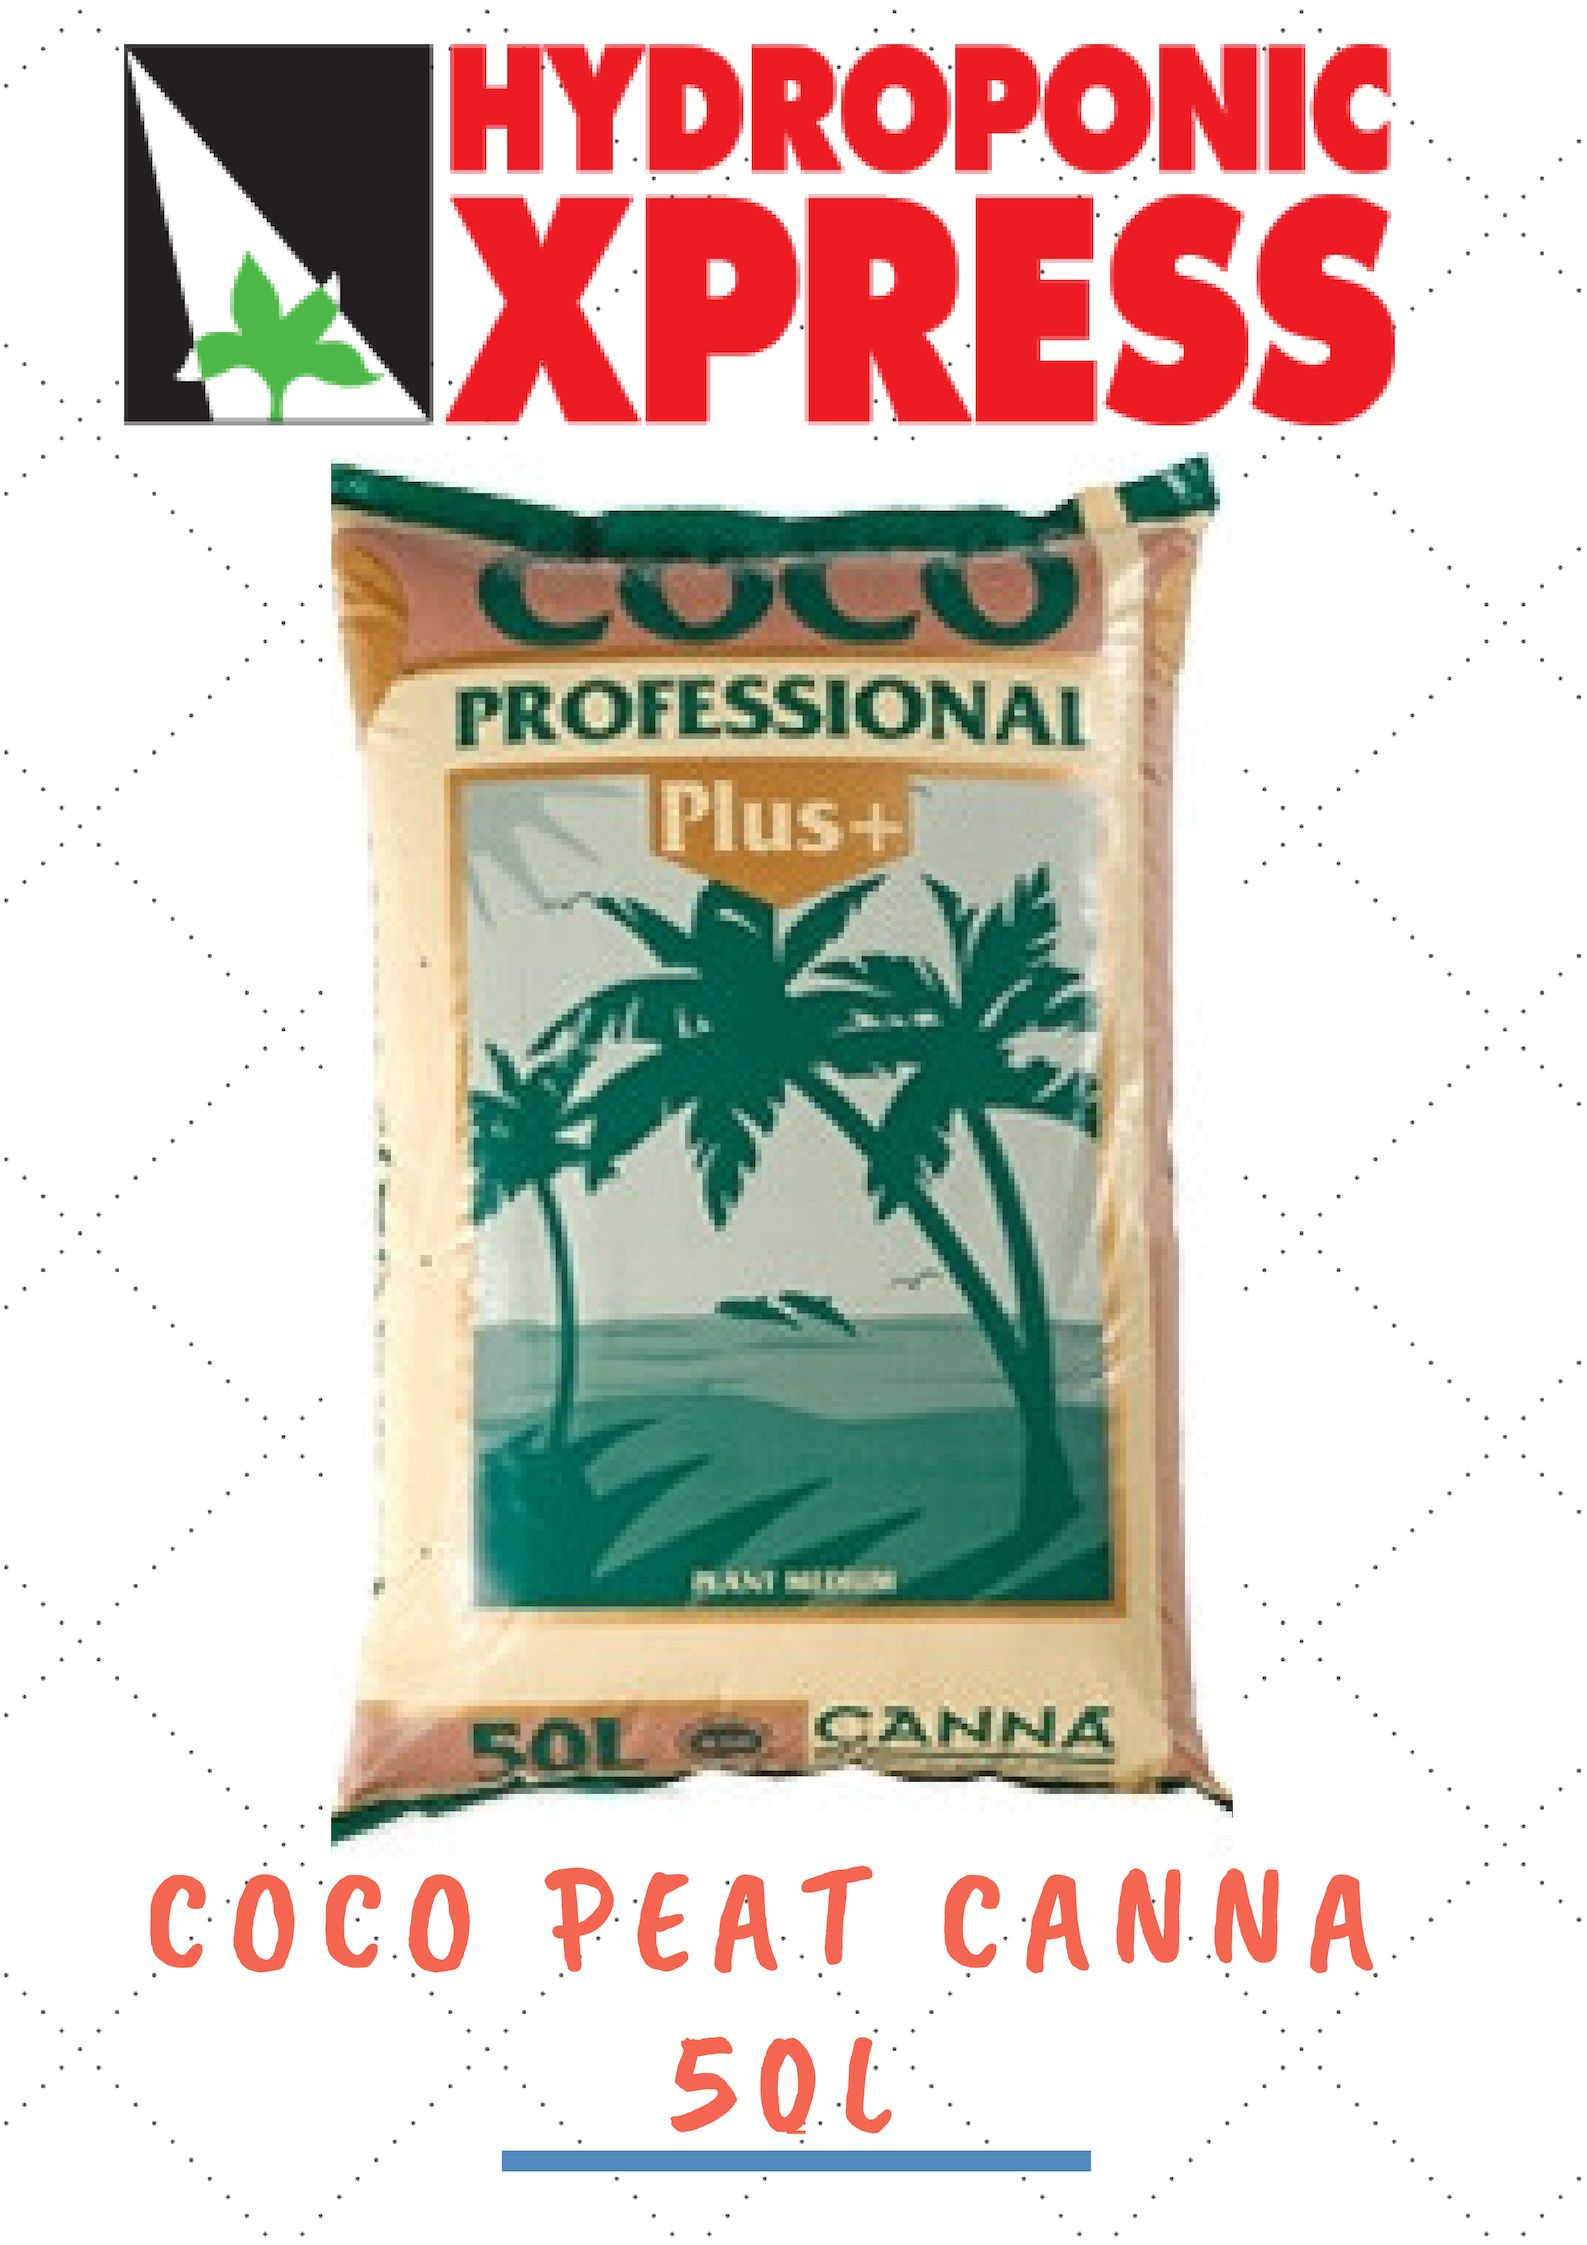 Coco Peat Canna is an organic product that has free from